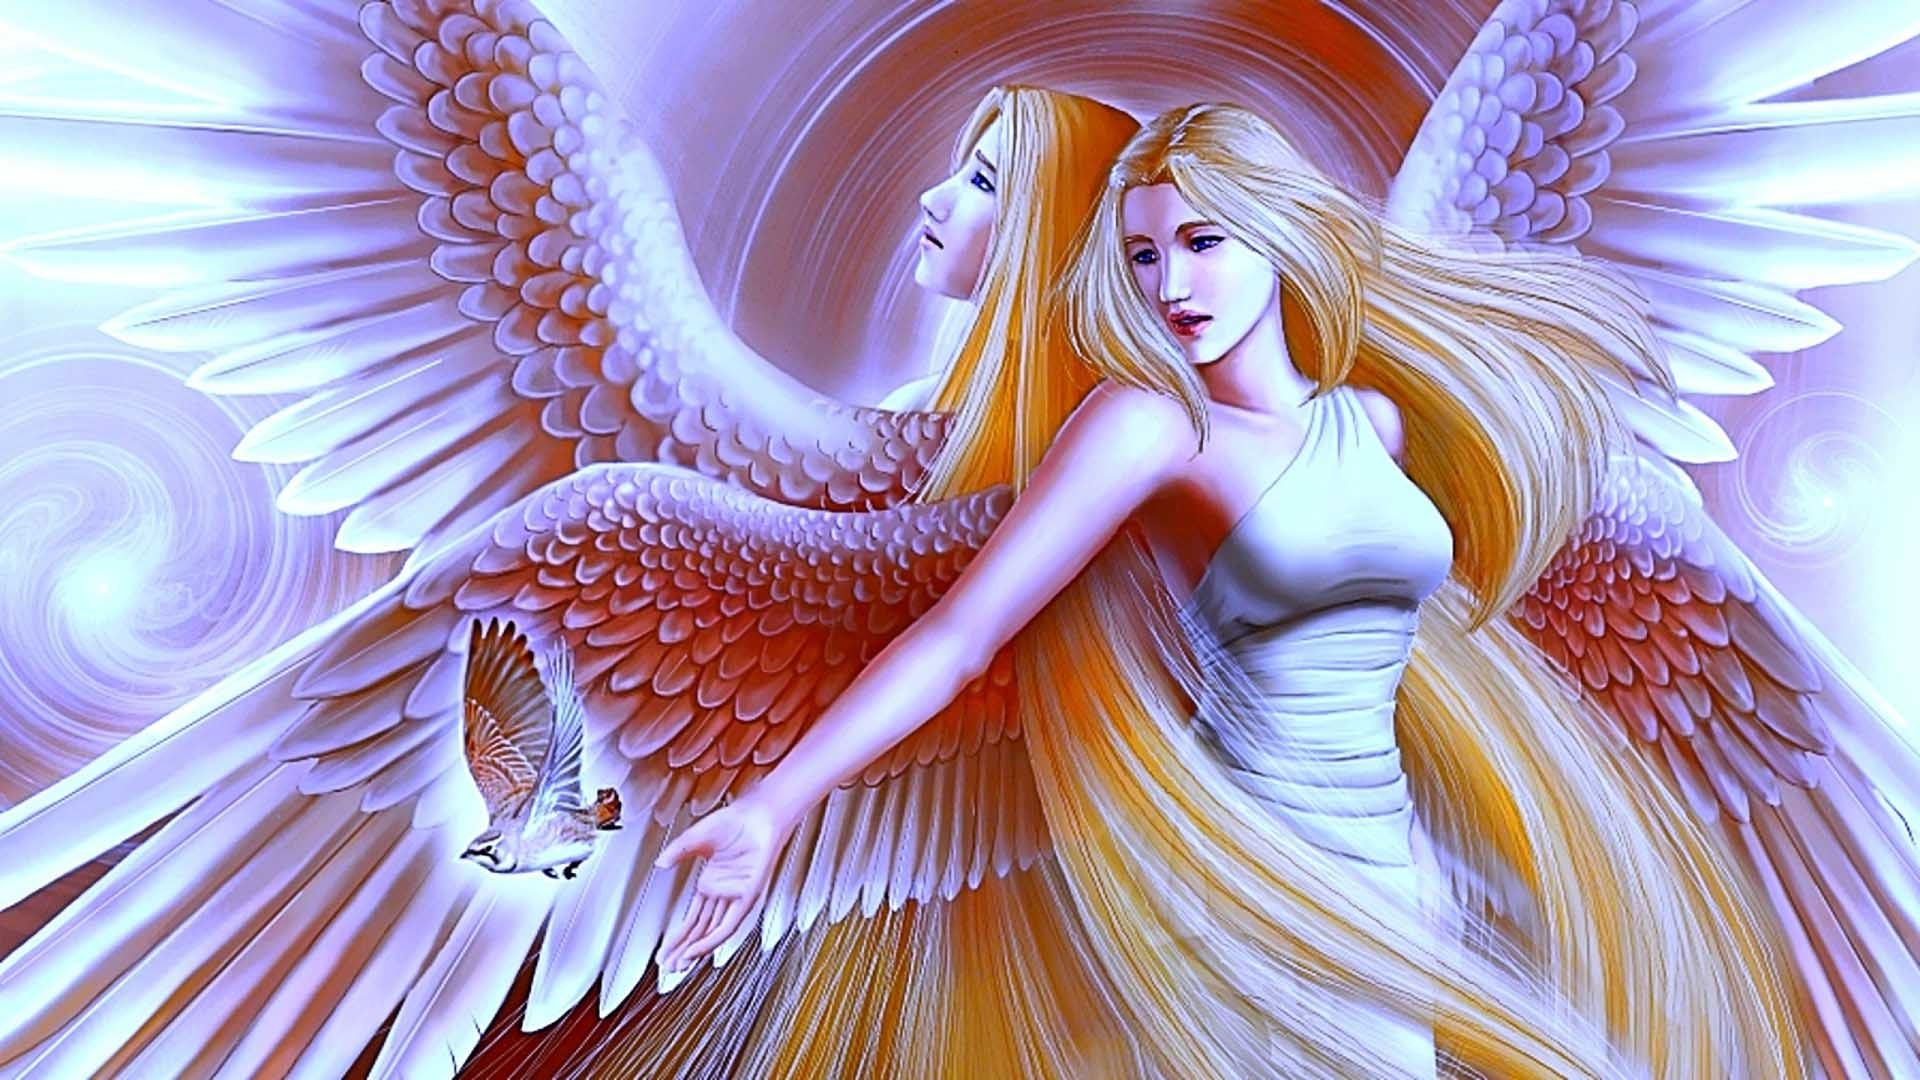 beautiful large wing angels wallpaper 1920a—1080